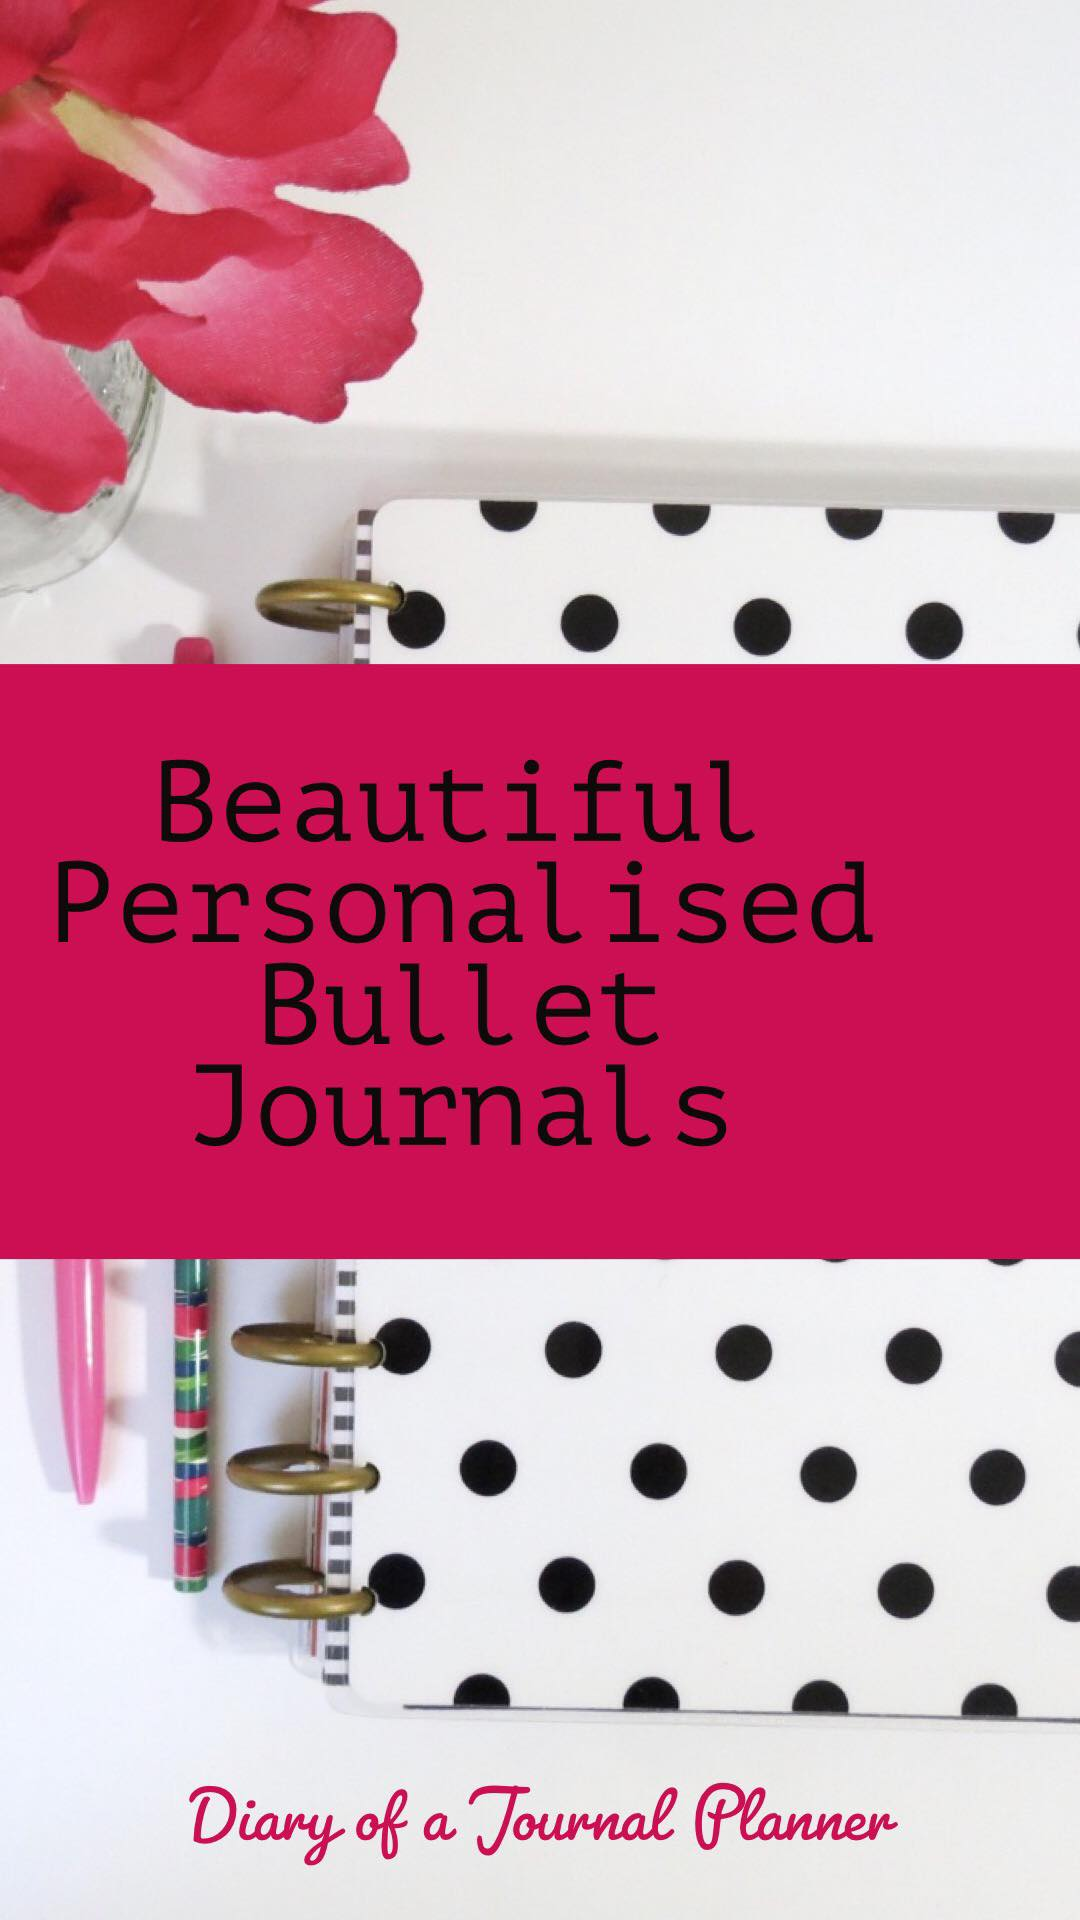 Amazing personalized bullet journals to gift to the journal lover